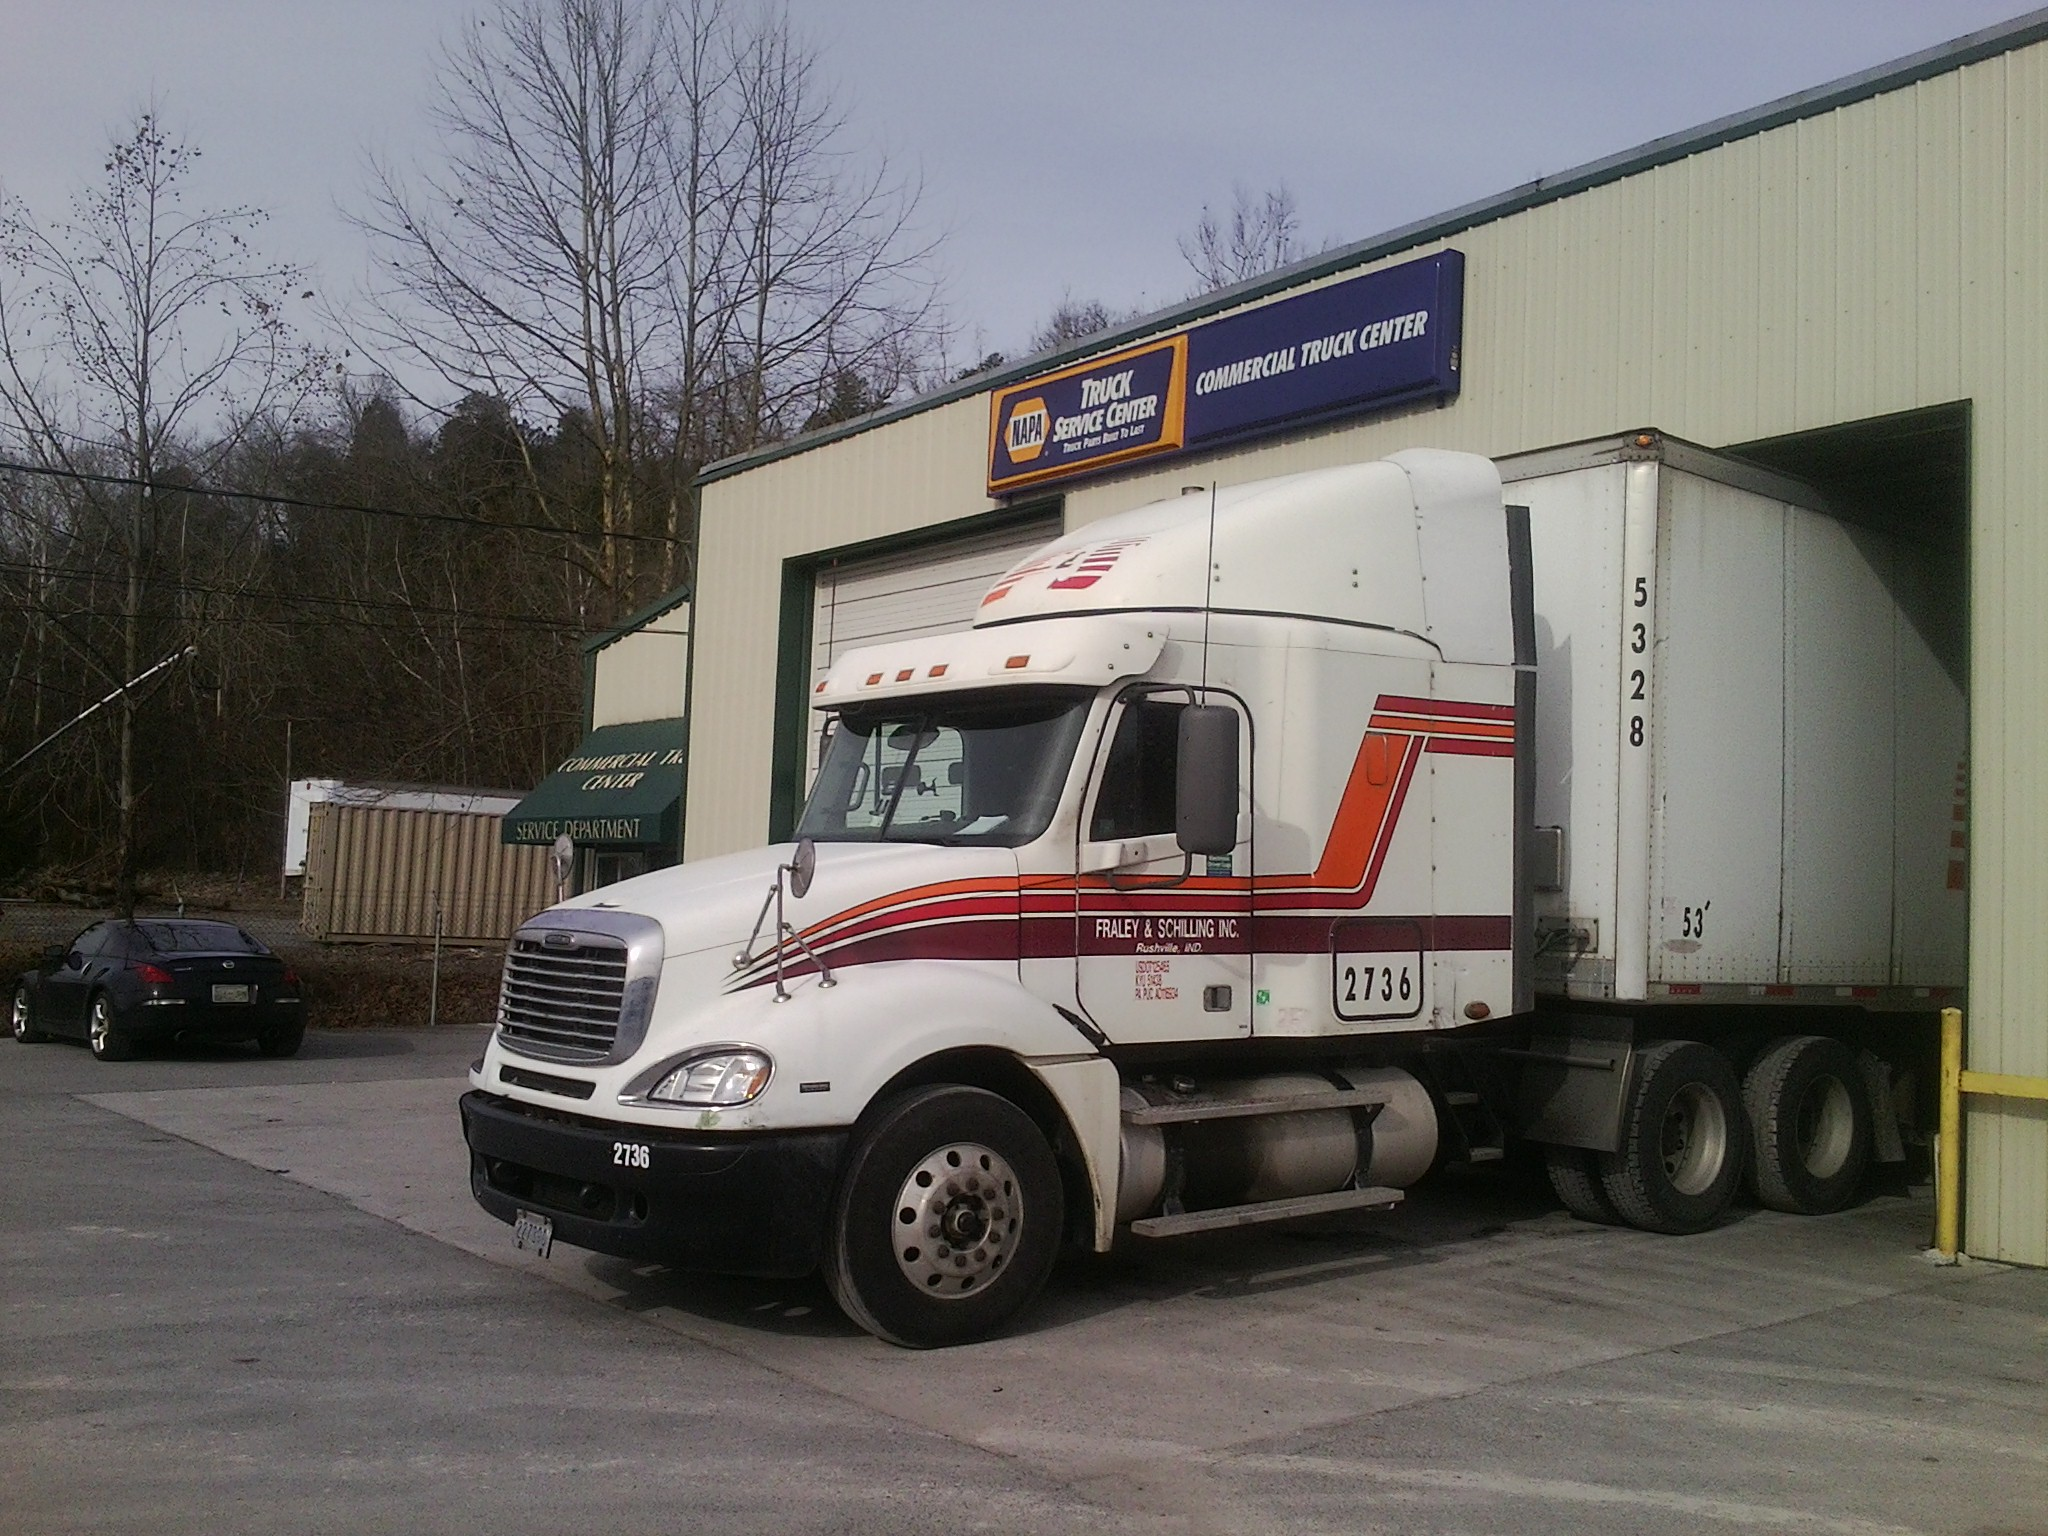 Commercial Truck Center, Inc image 3